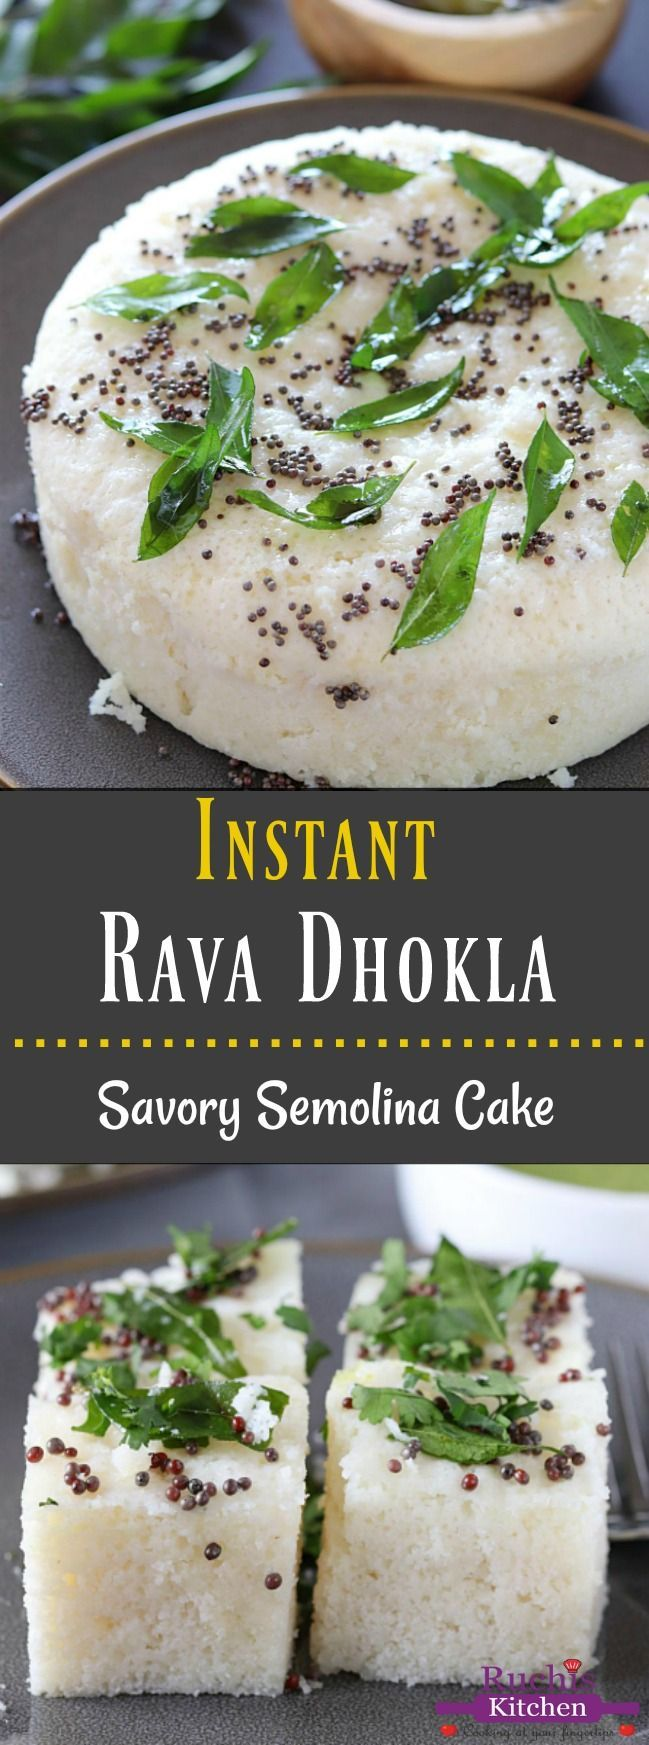 Soft and spongy Instant Rava Dhokla is a steamed savory cake made in a jiffy with semolina (sooji) and aromatic spices. A perfect tea-time snack that is light on the tummy and tastes amazing! #savorycake #khattadhokla #instantravadhokla #ravadhokla #whitedhokla #semolinacake